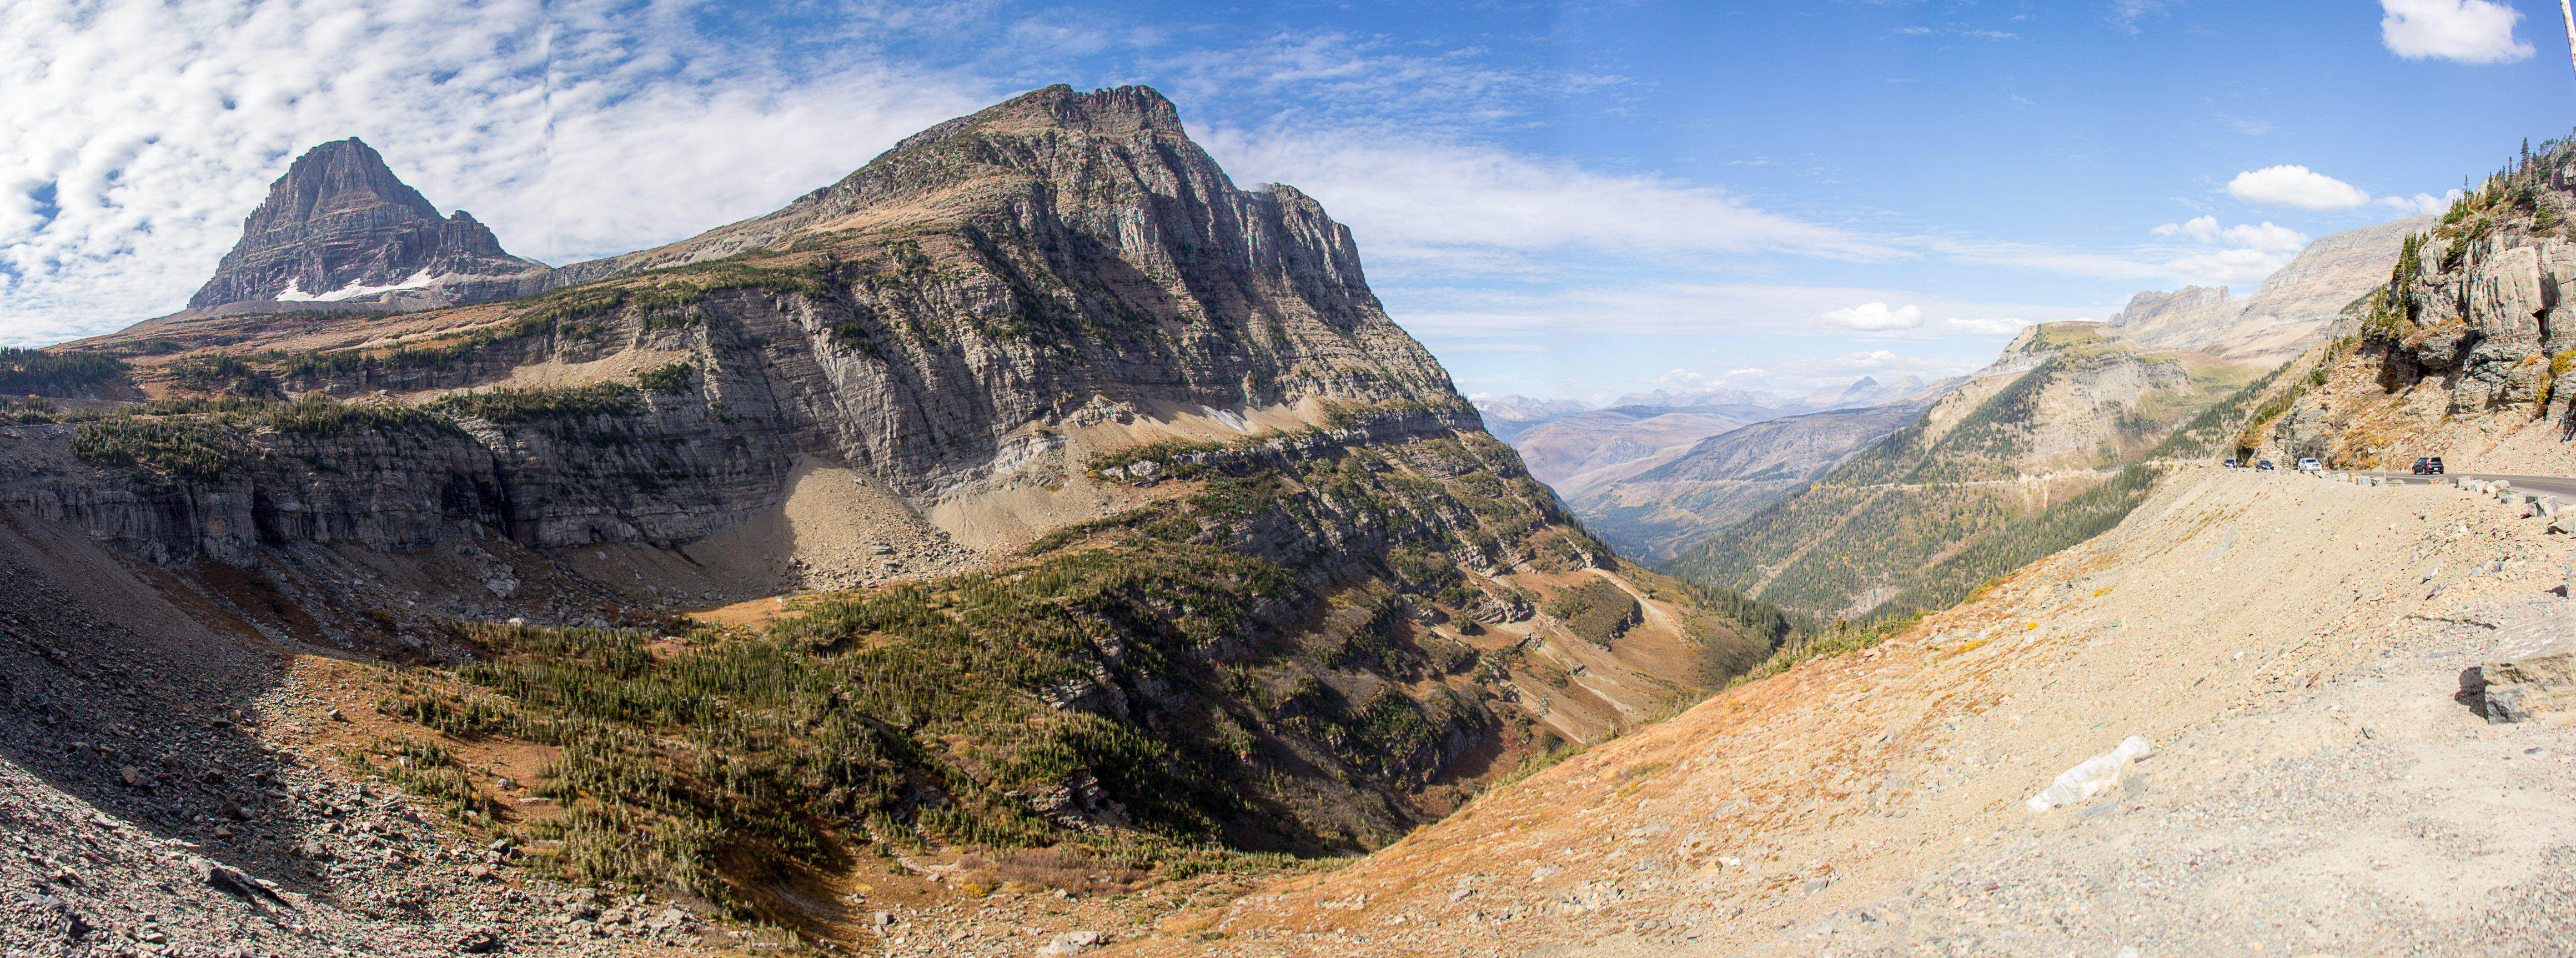 Logan's Pass Pano